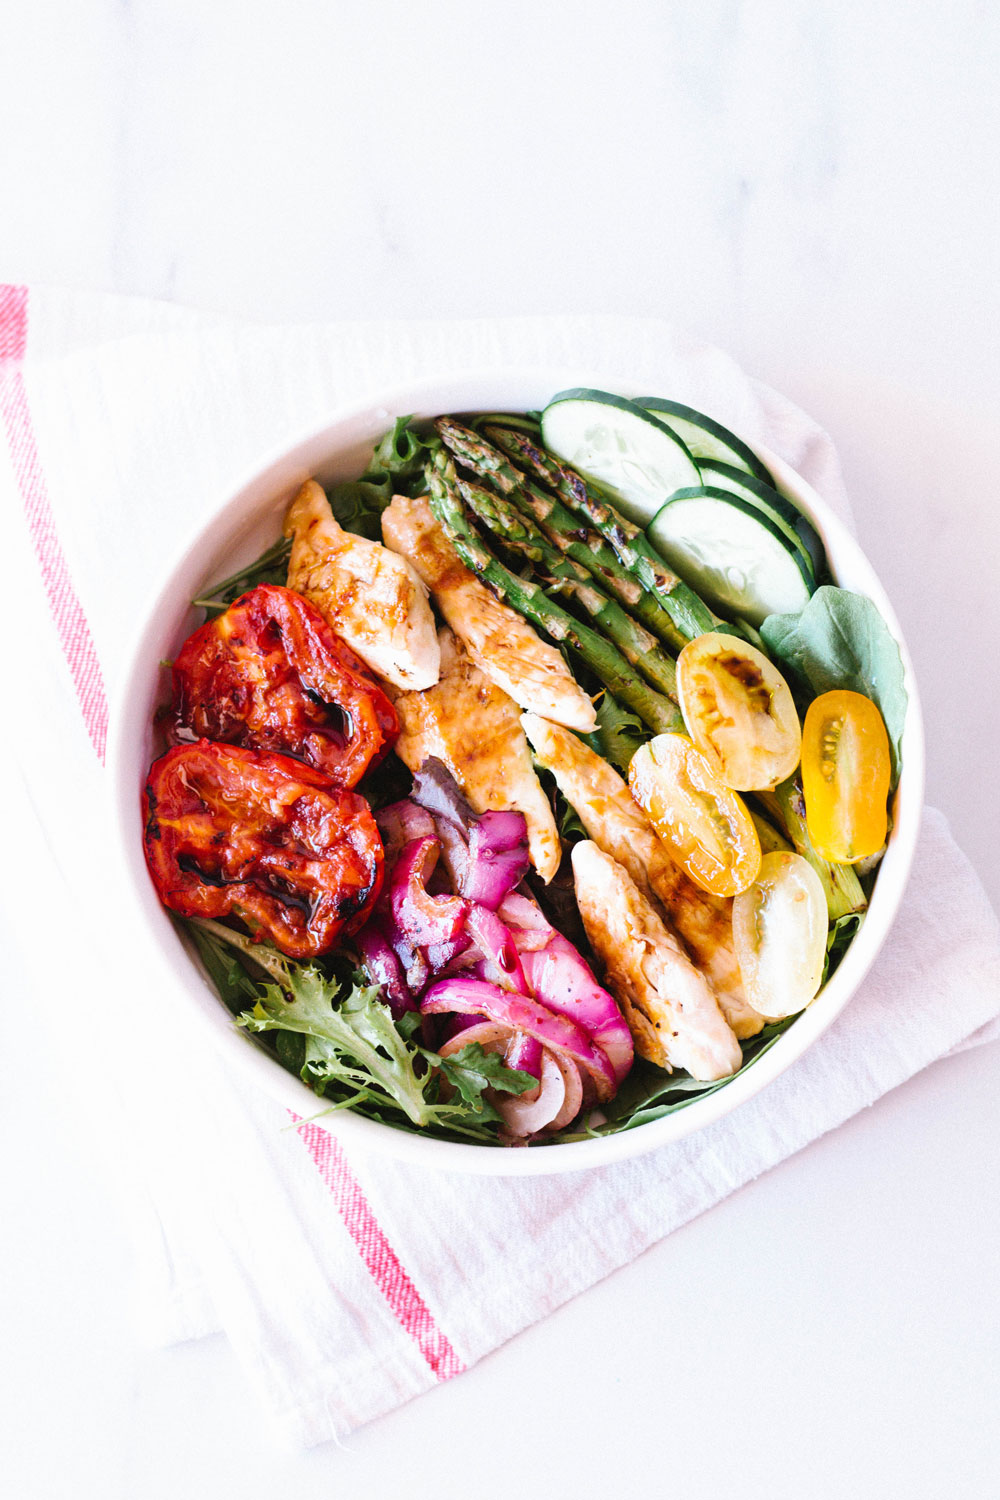 Salads have a reputation for being rather basic, but this grilled chicken and vegetable low-carb summer salad is far from being boring. The sweet caramelized onions mixed with the crispy roasted asparagus and the fresh raw tomatoes make a delicious contrast of flavors and textures. https://www.spotebi.com/recipes/grilled-chicken-vegetable-low-carb-summer-salad/